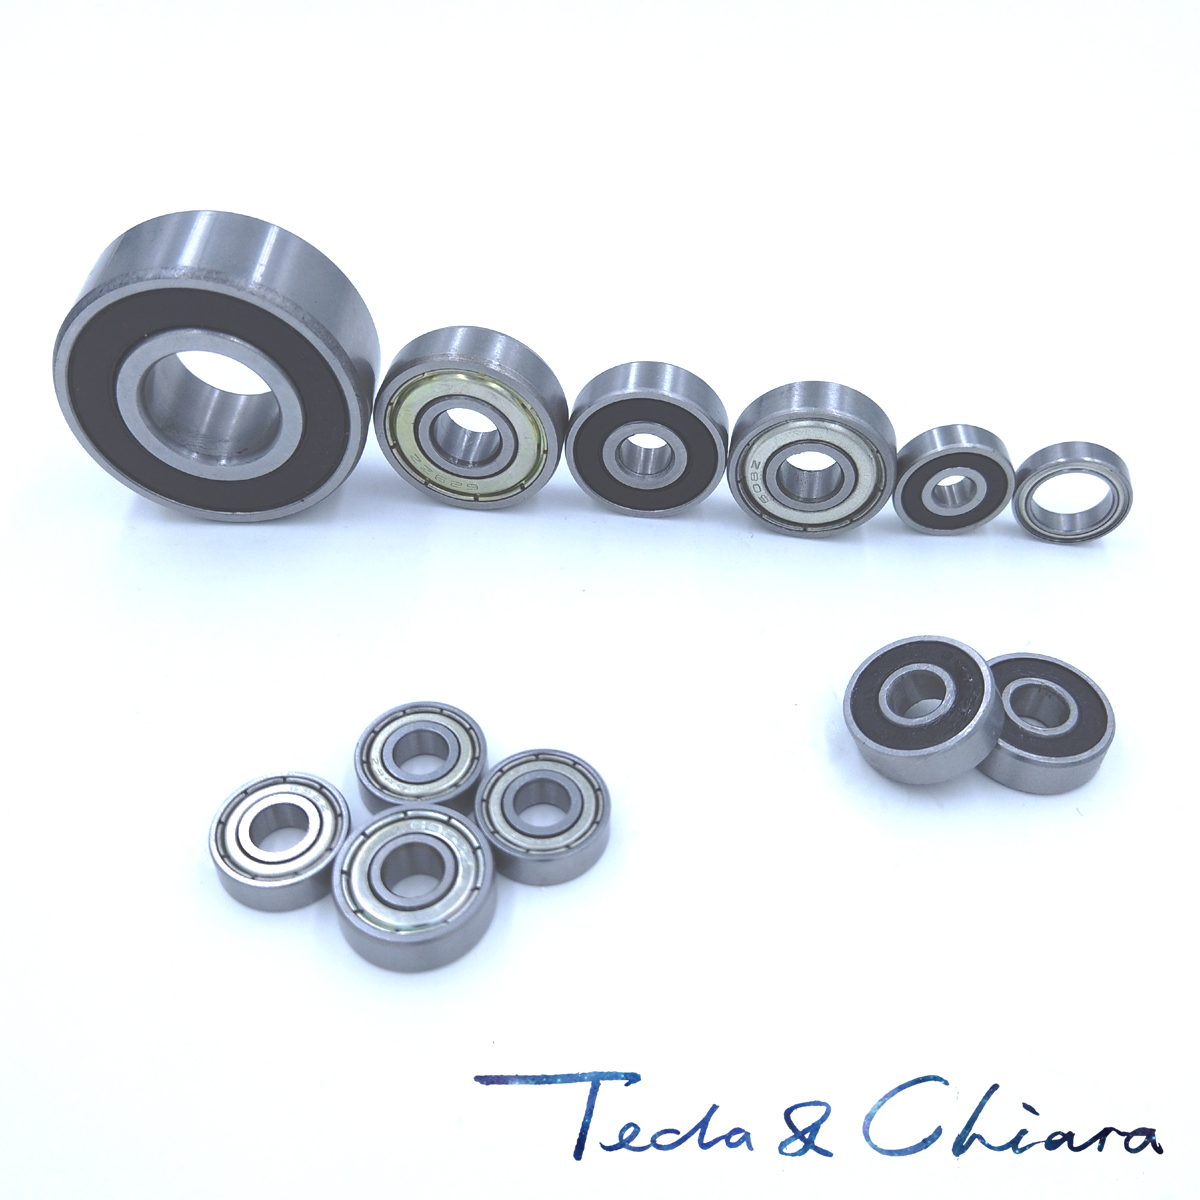 6201 6201ZZ 6201RS 6201-2Z 6201Z 6201-2RS ZZ RS RZ 2RZ Deep Groove Ball Bearings 12 X 32 X 10mm